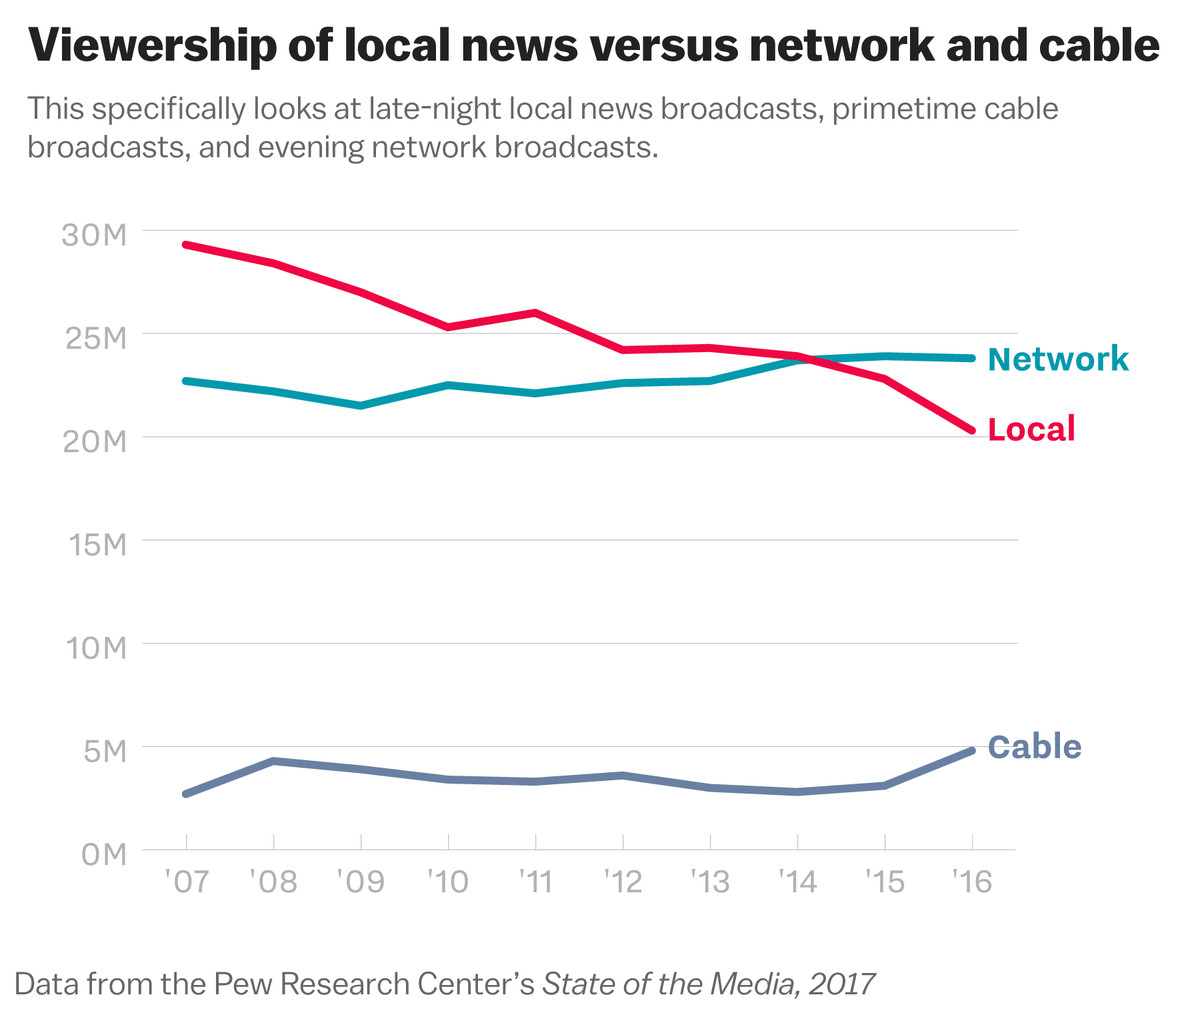 Sinclair's pro-Trump news is taking over local TV  See if